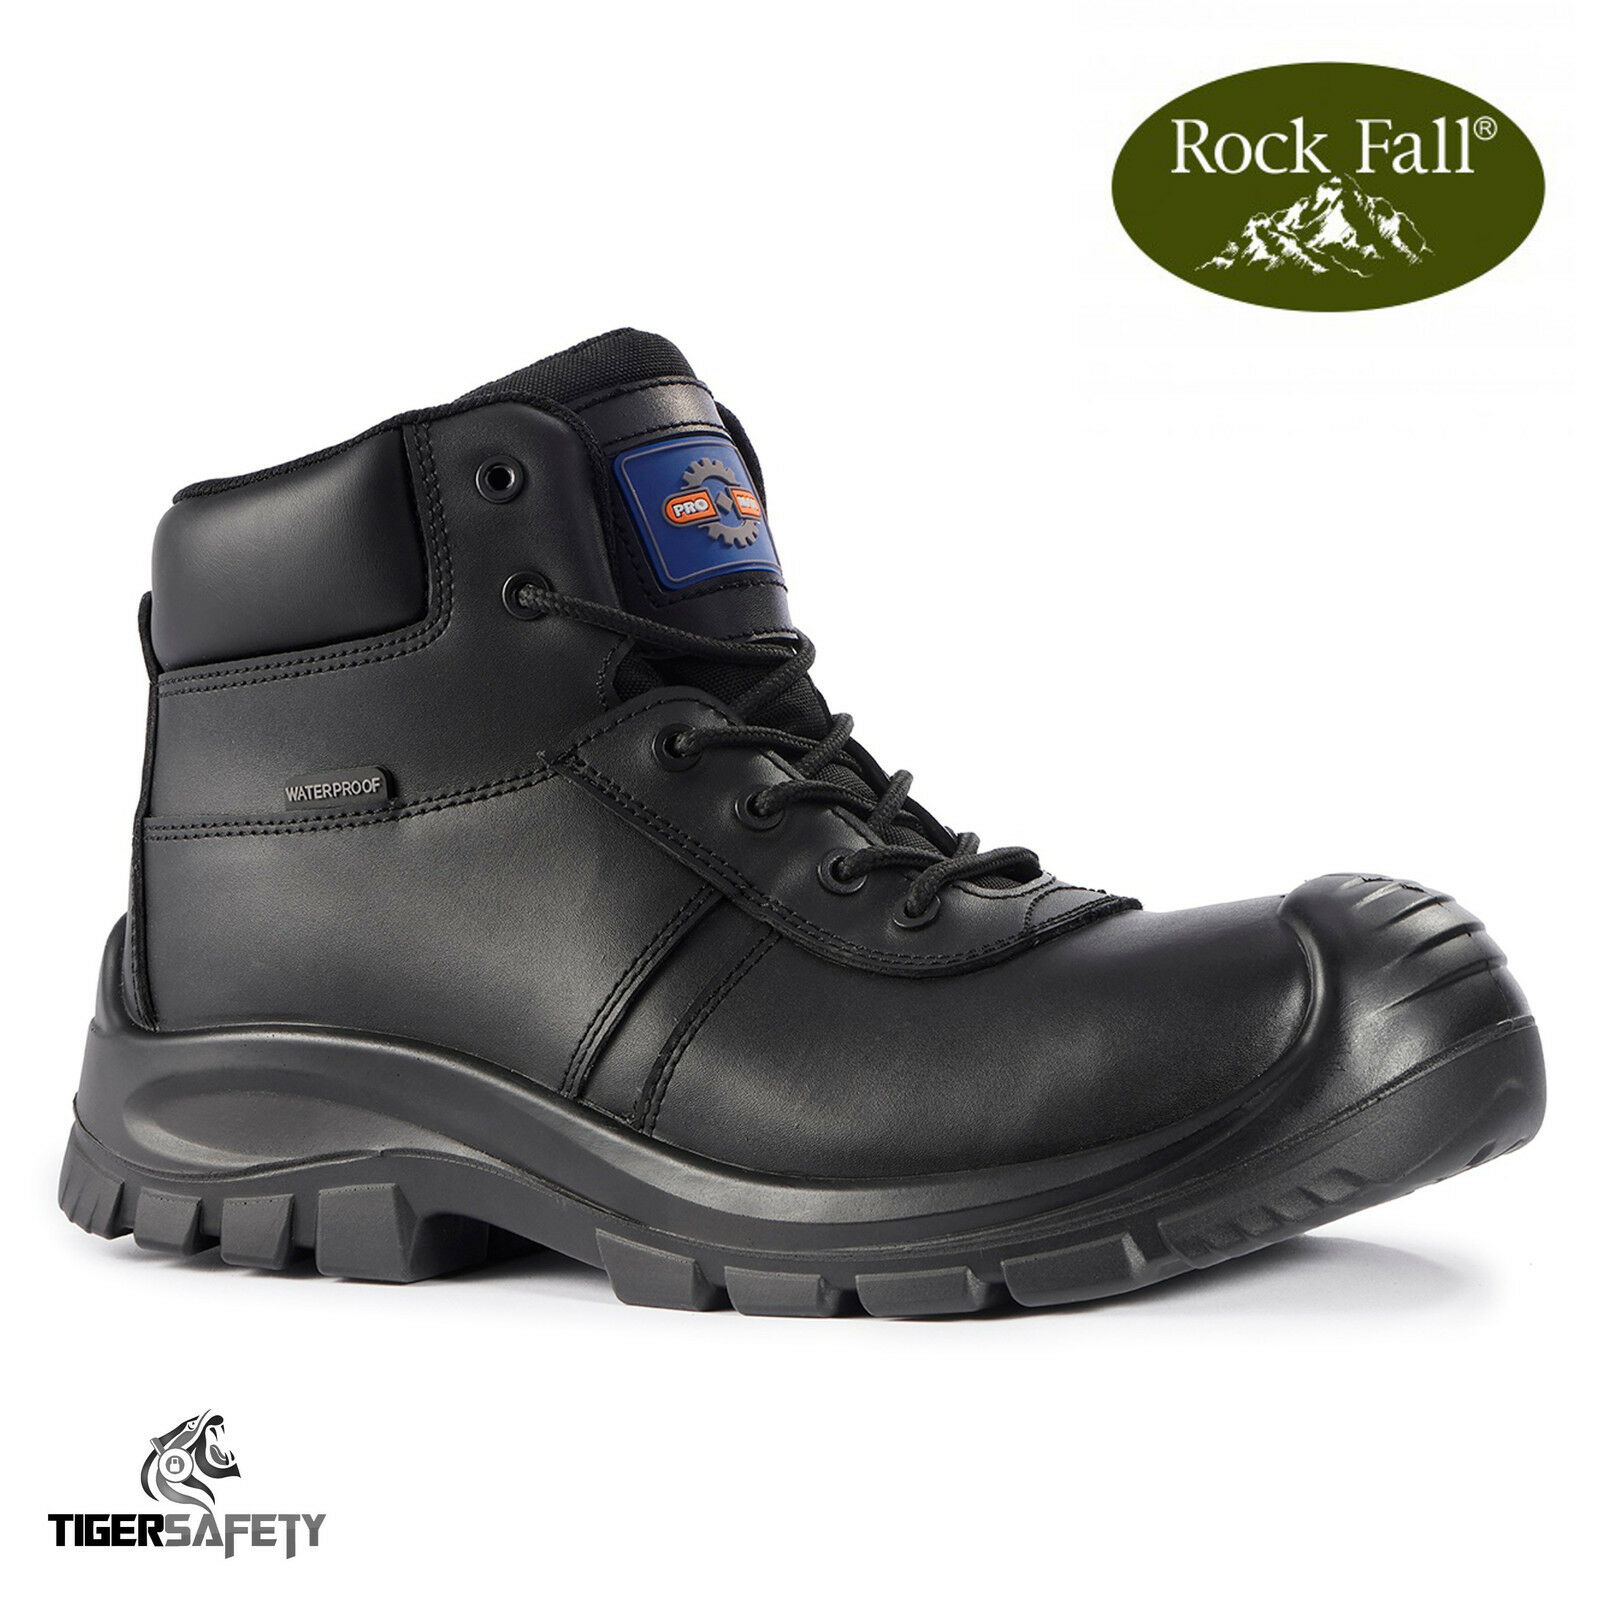 Rock S3 Fall Uomo pro Baltimore S3 Rock Nero con Punta in Acciaio Impermeabili f04088